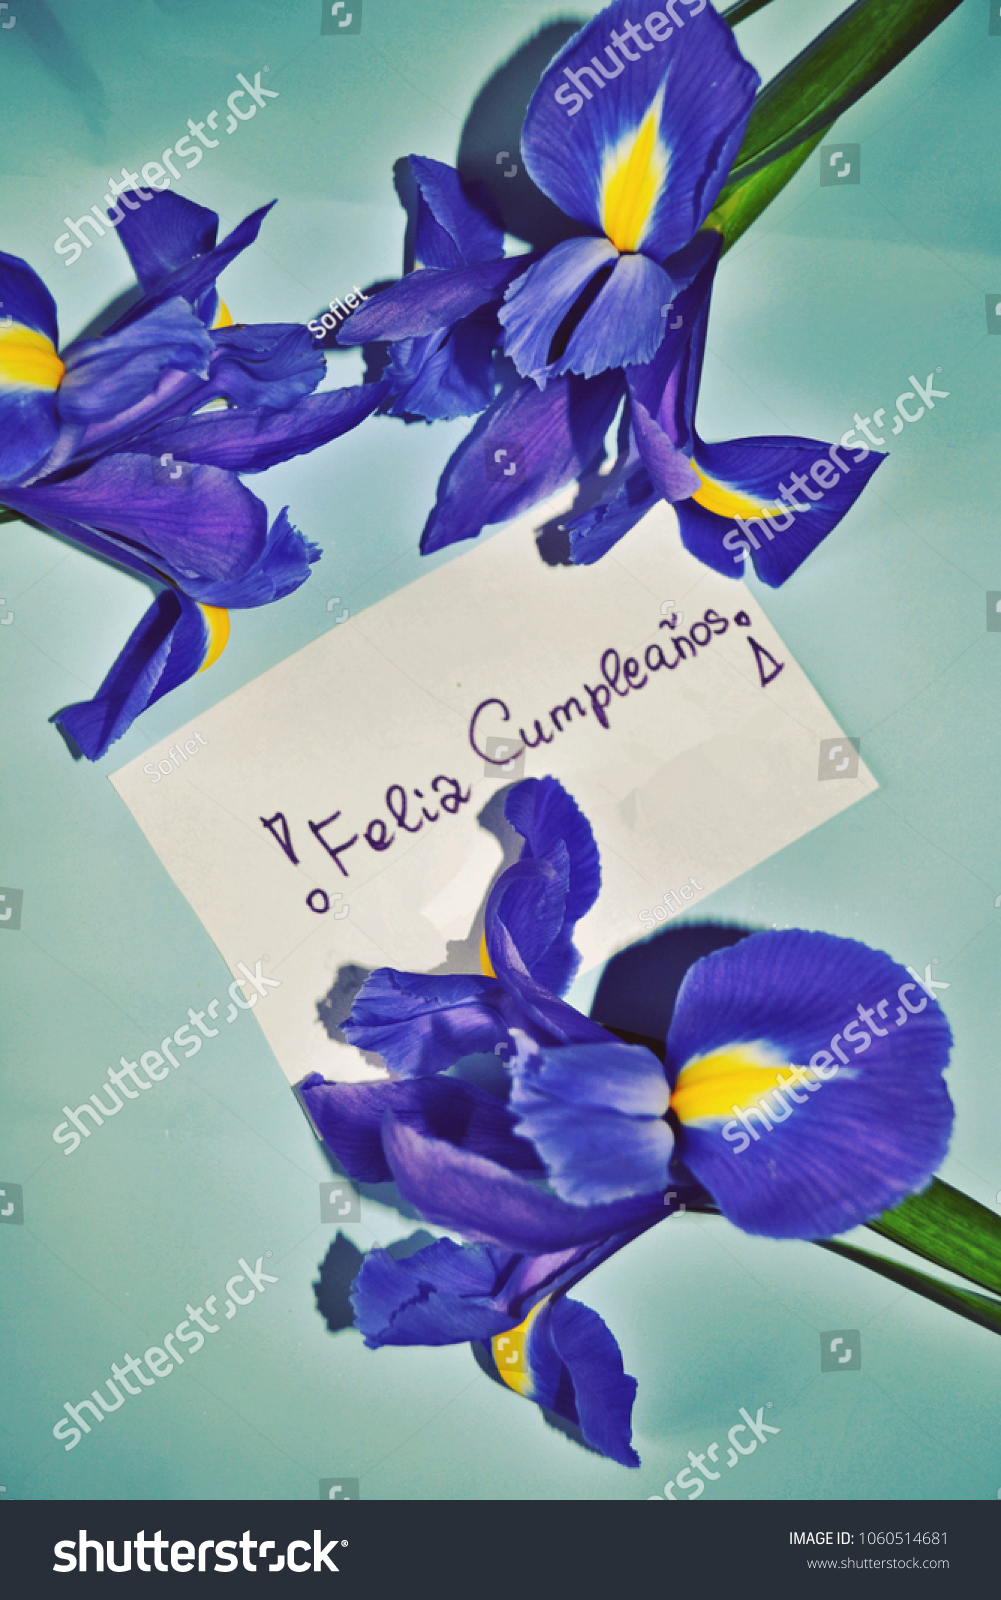 Birthday card happy birthday greetings spanish stock photo royalty birthday card happy birthday greetings in spanish feliz cumpleaos with iris flowers against m4hsunfo